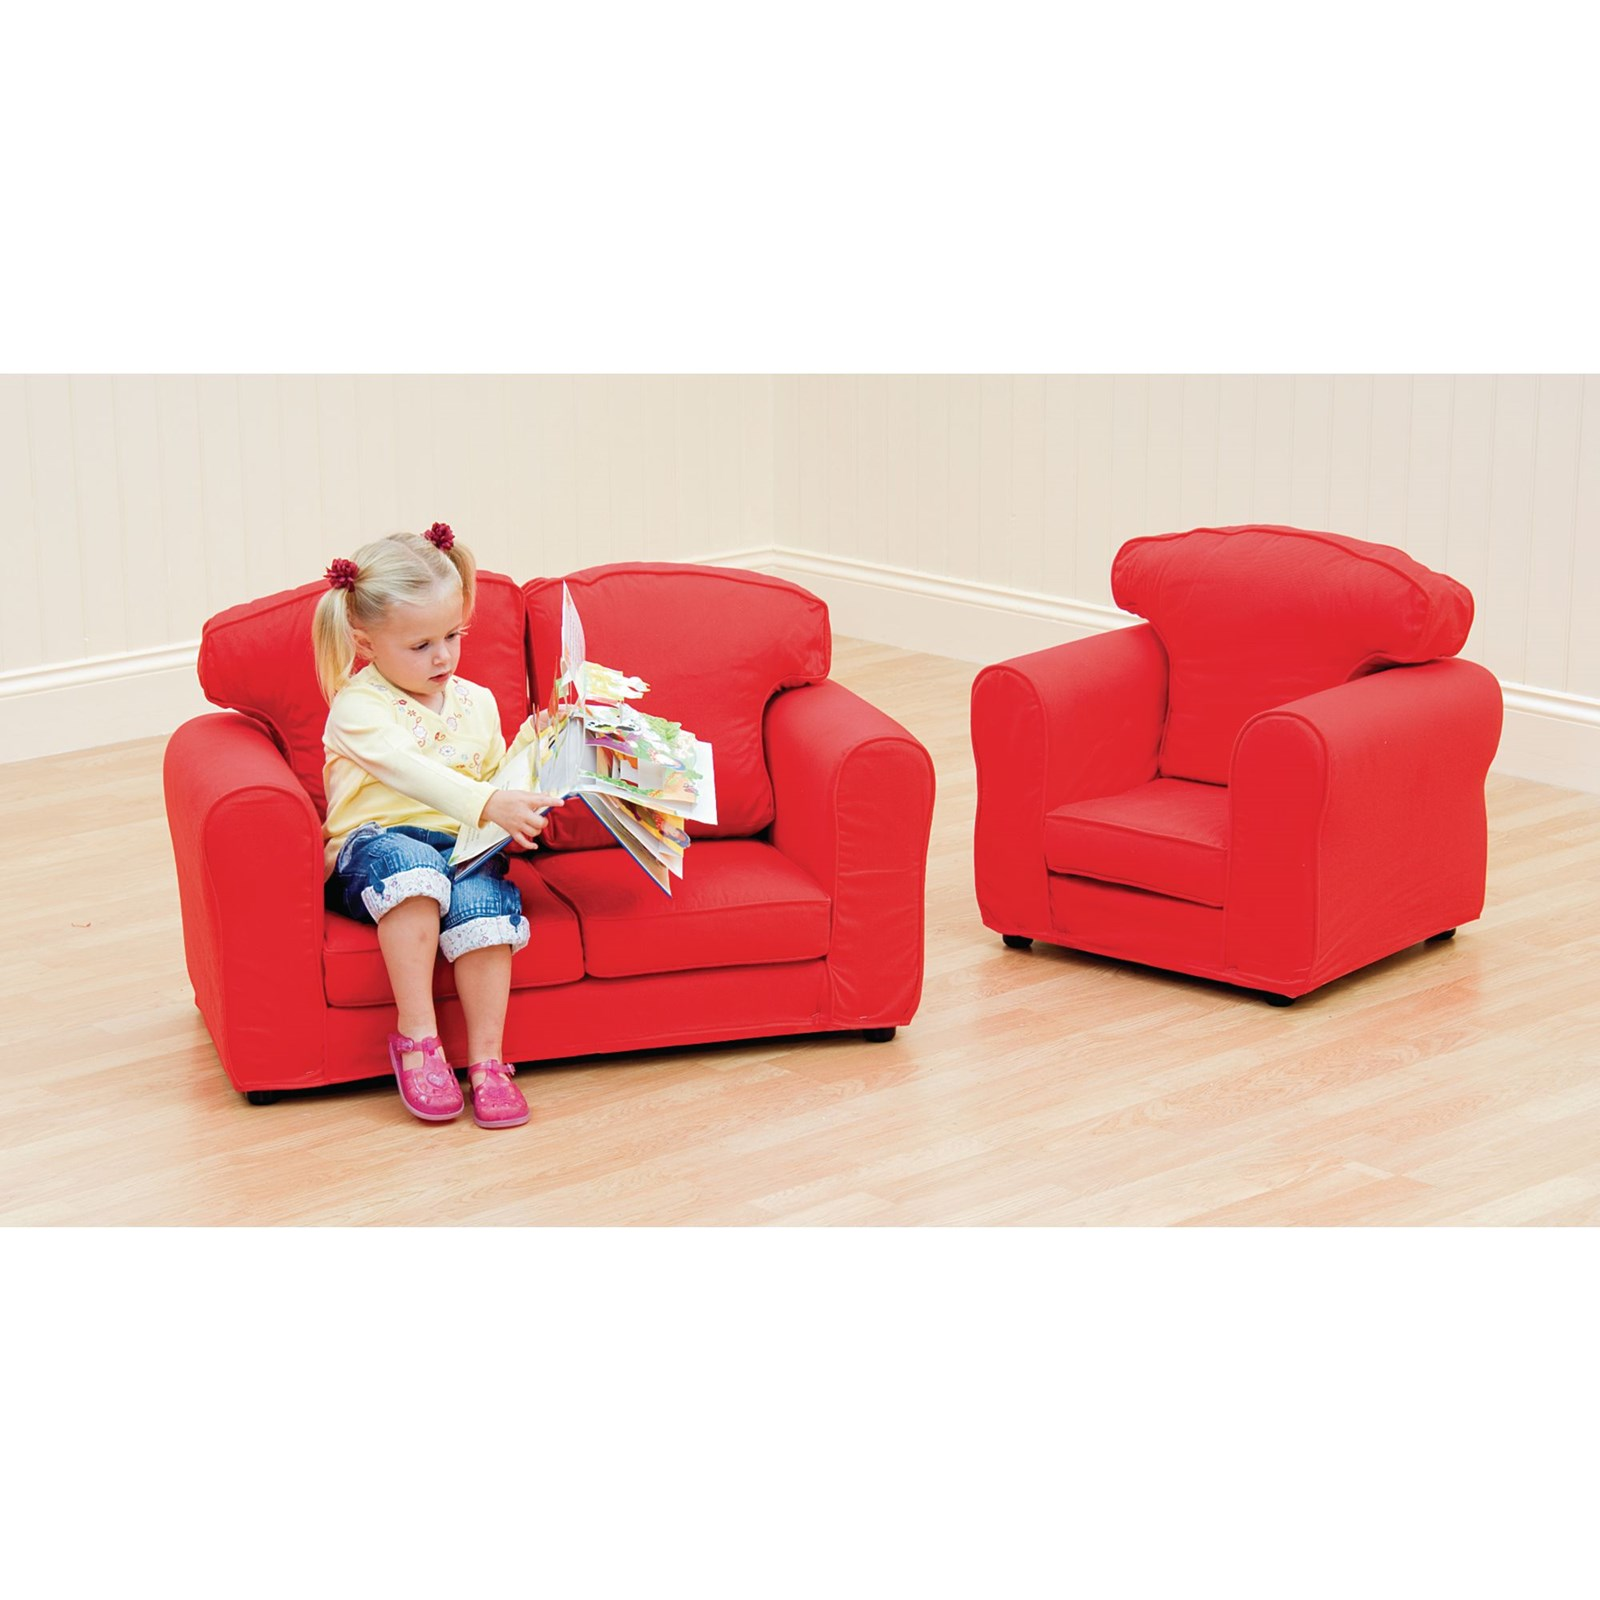 Rainbow Armchair (Removable Covers) - Red